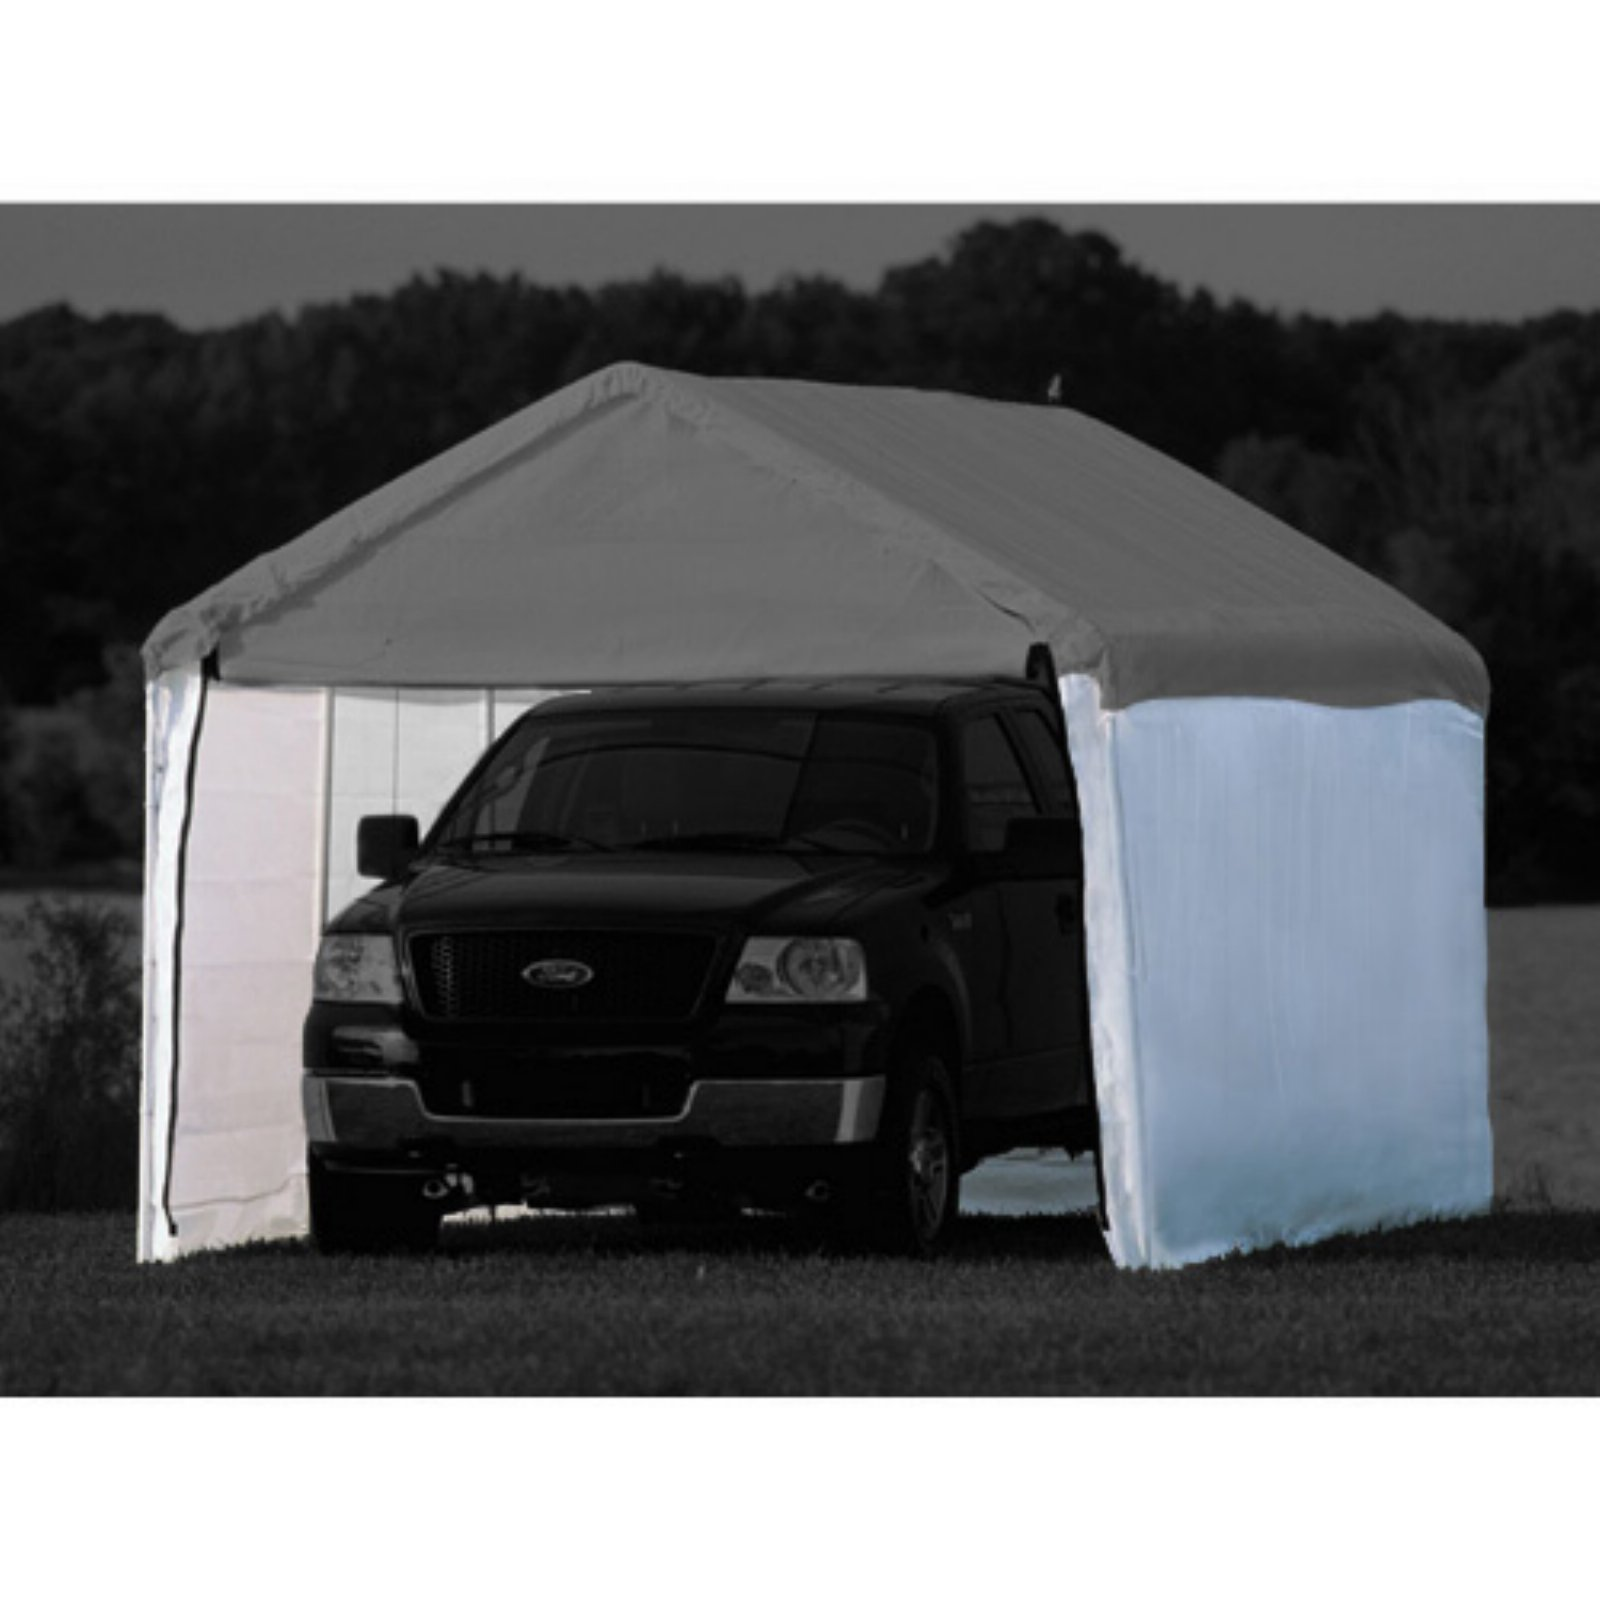 "ShelterLogic Super Max 10' x 20' White Canopy Enclosure Kit Fits 2"" Frame"